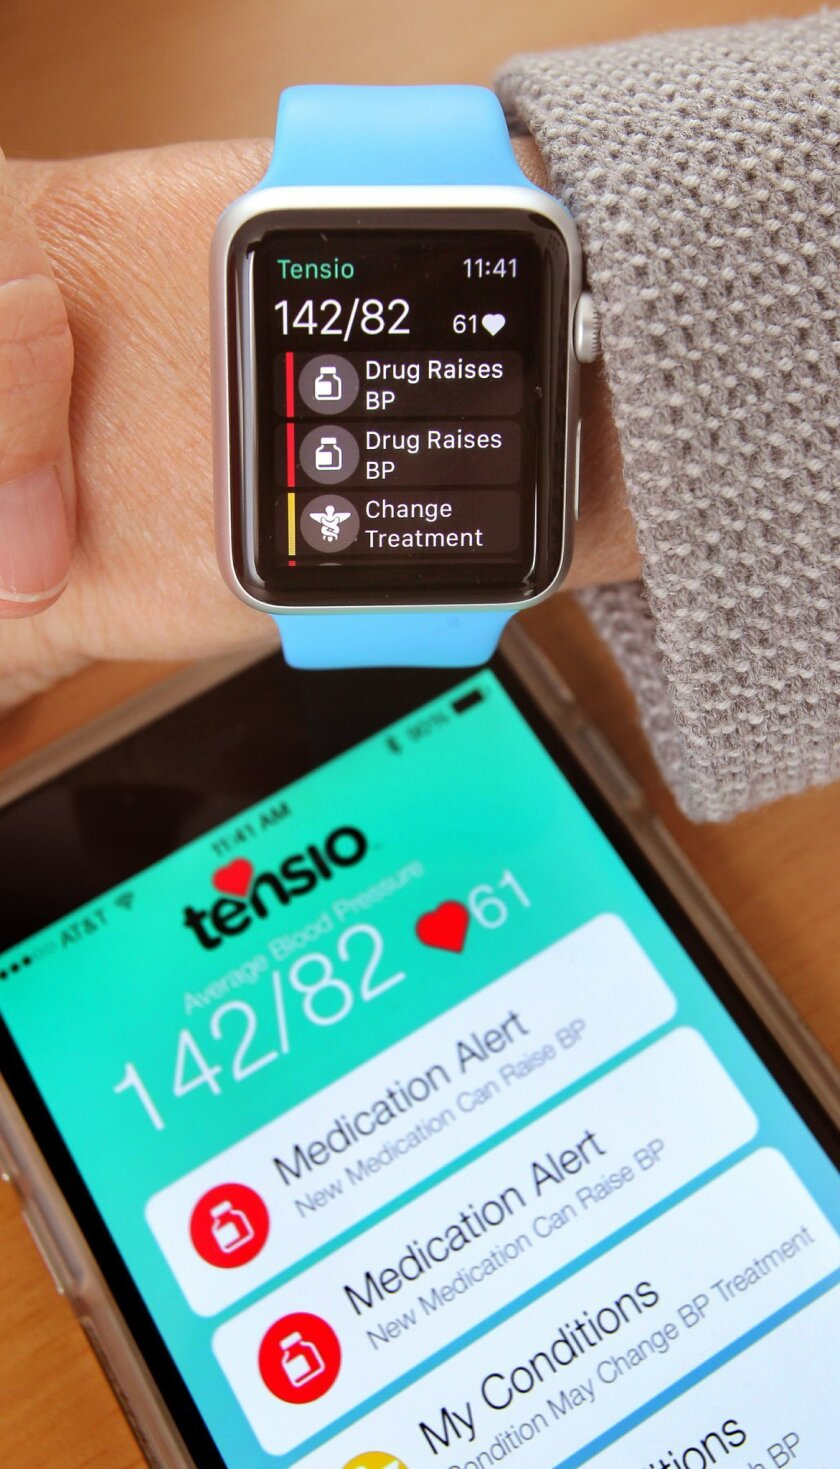 Humetrix's latest app, Tensio, helps patients manage hypertension. It was one of the apps announced with the launch of the Apple Watch in April.